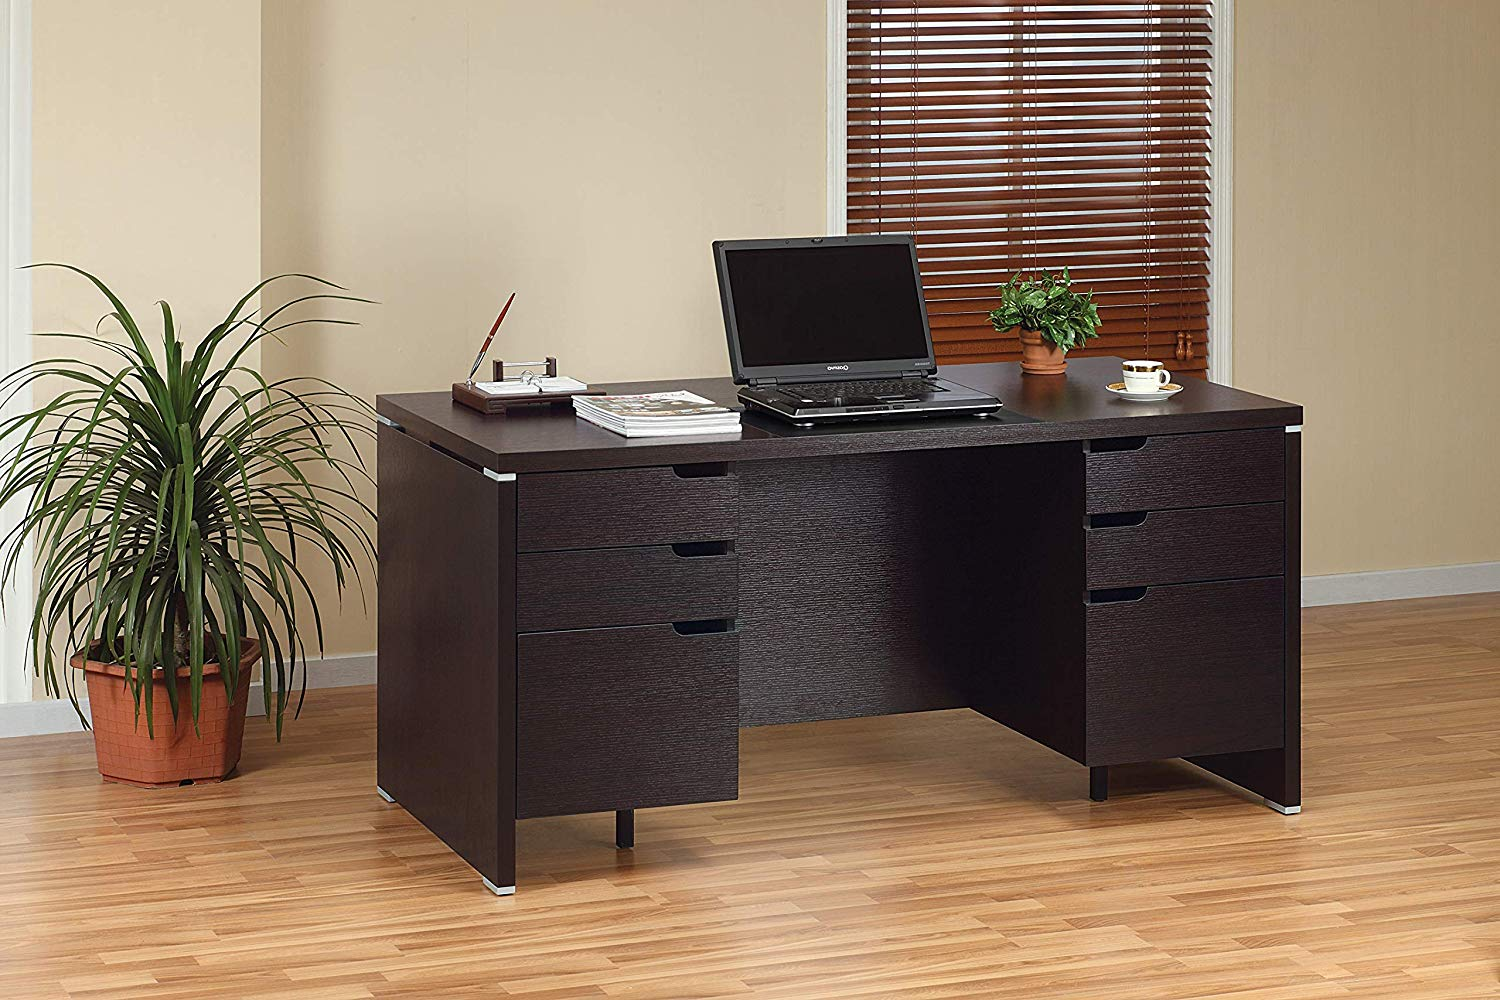 """Major-Q Modern Contemporary Style 30"""" H Home Office Heavy Duty Wooden Desk Workstation Espresso Finish Drawers, Id8010325"""